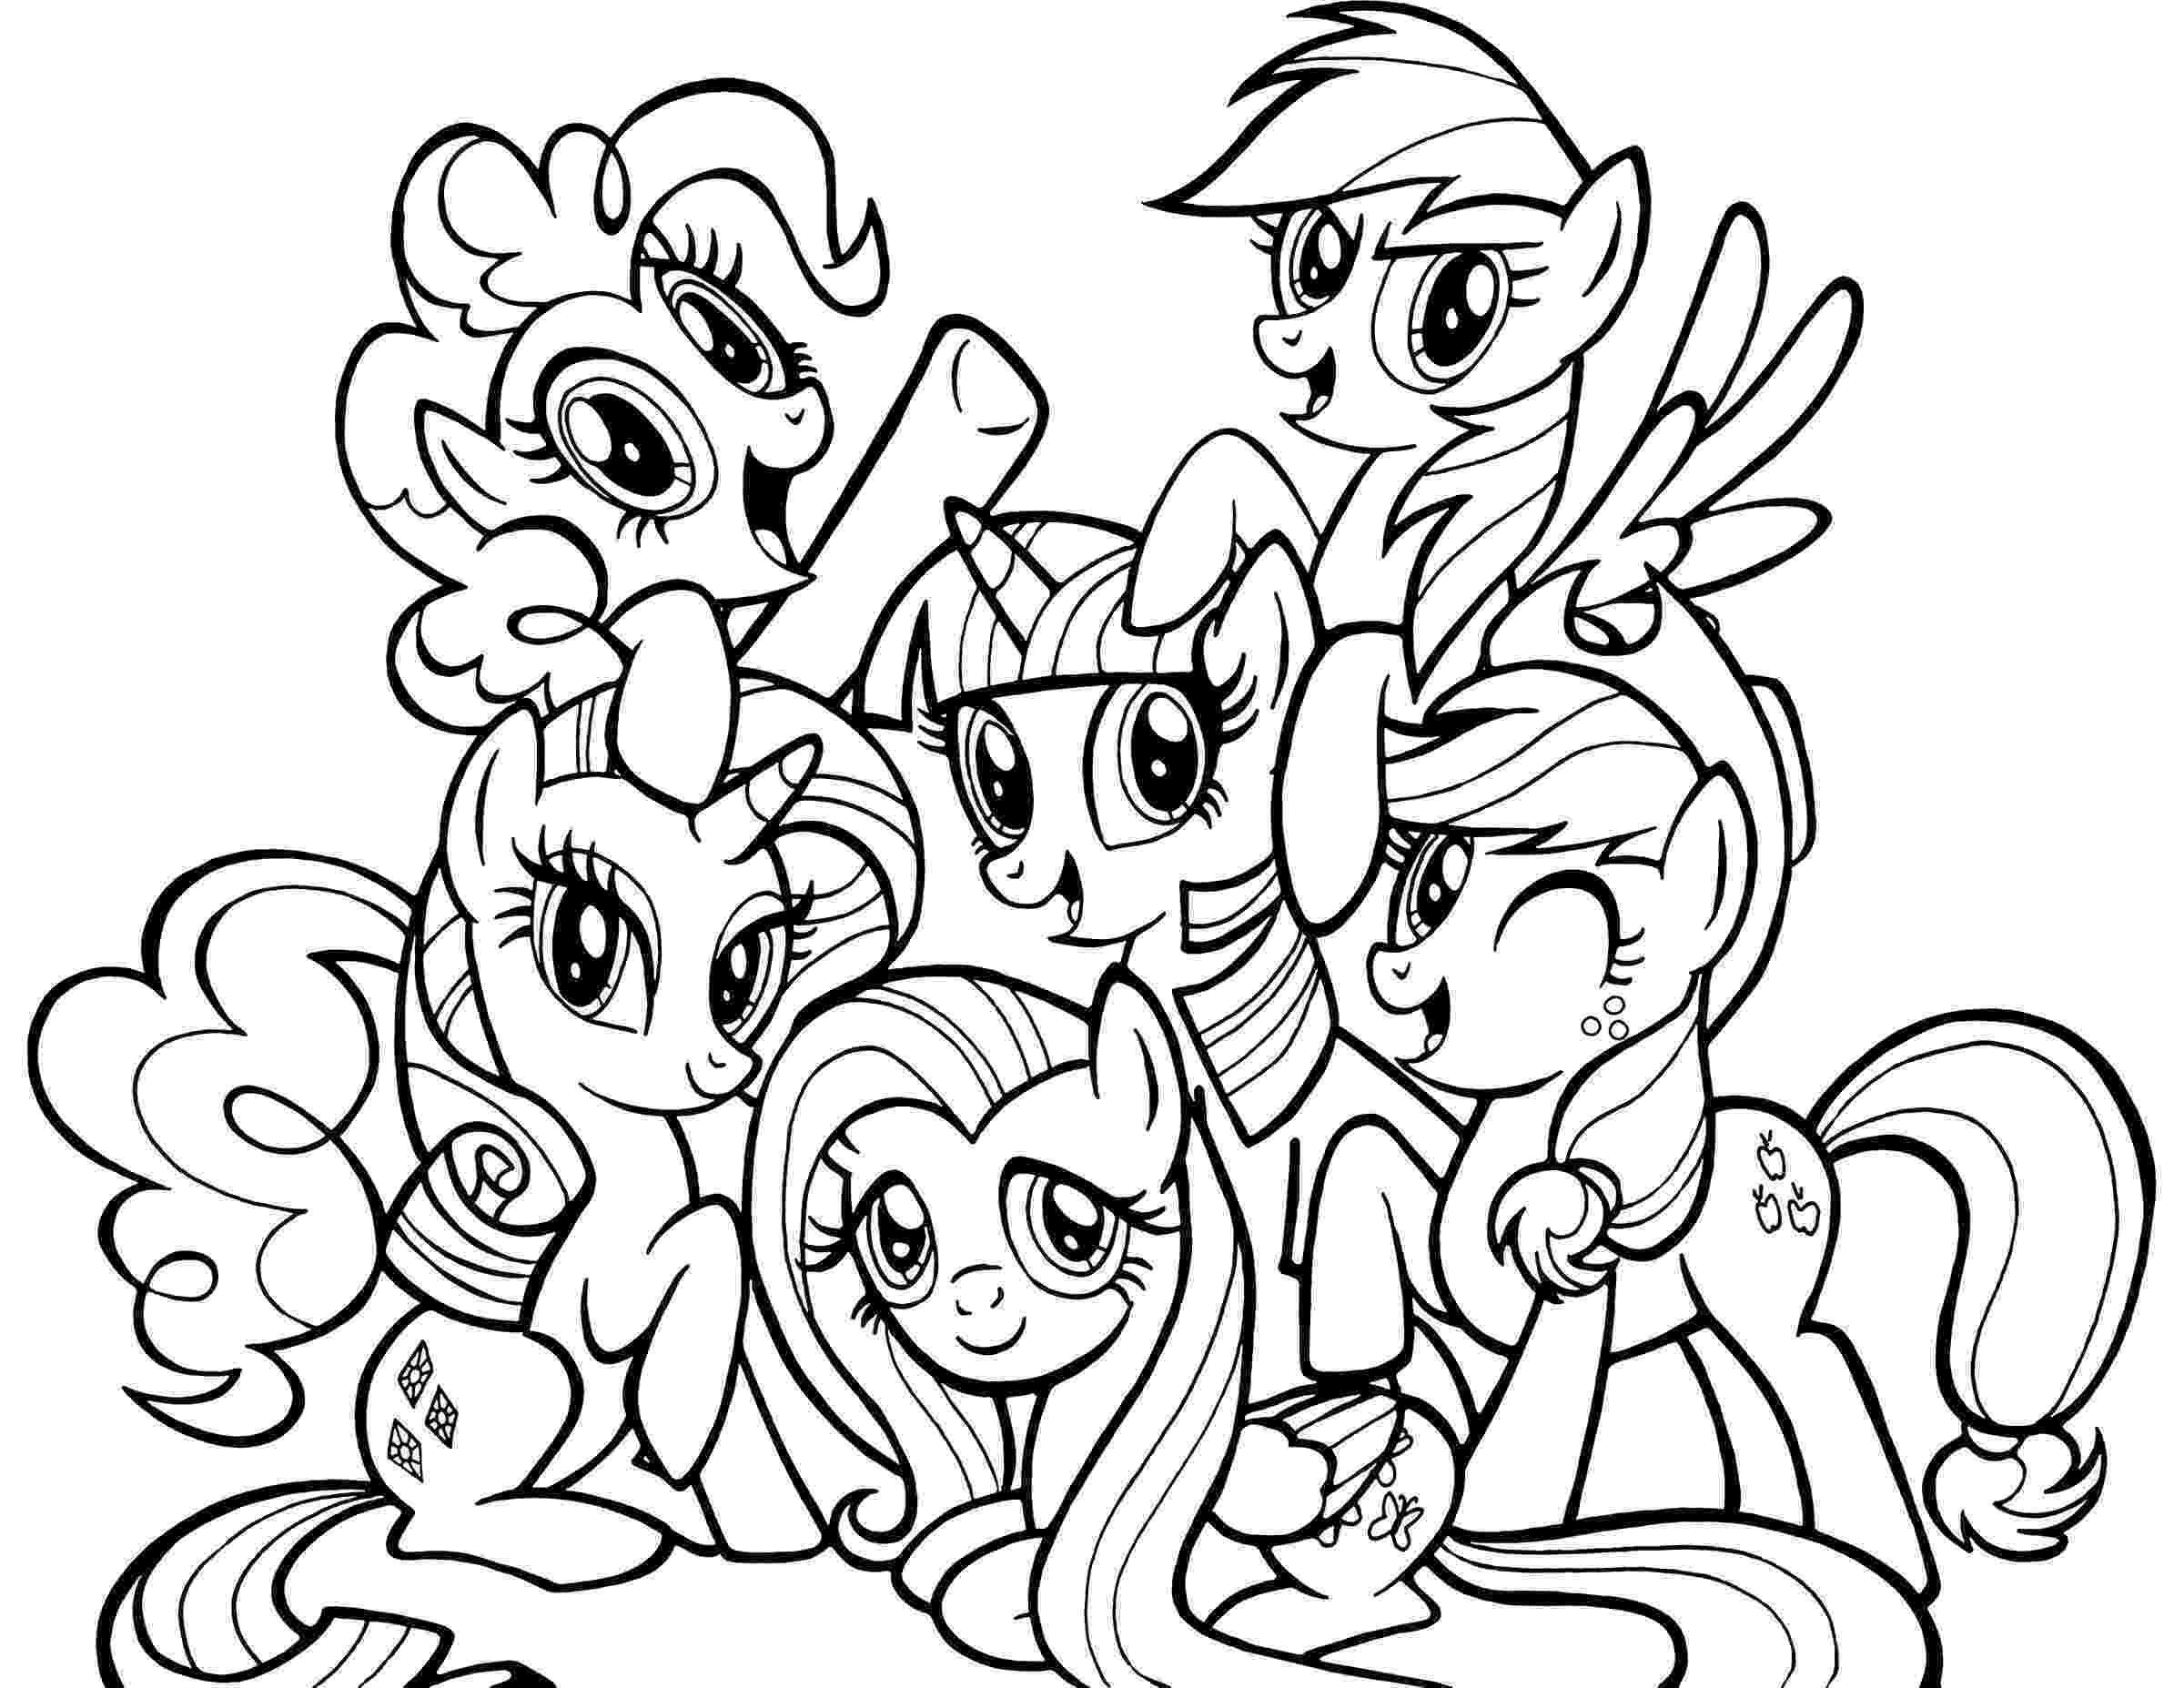 coloring pages little pony my little pony christmas coloring pages to download and little pages coloring pony